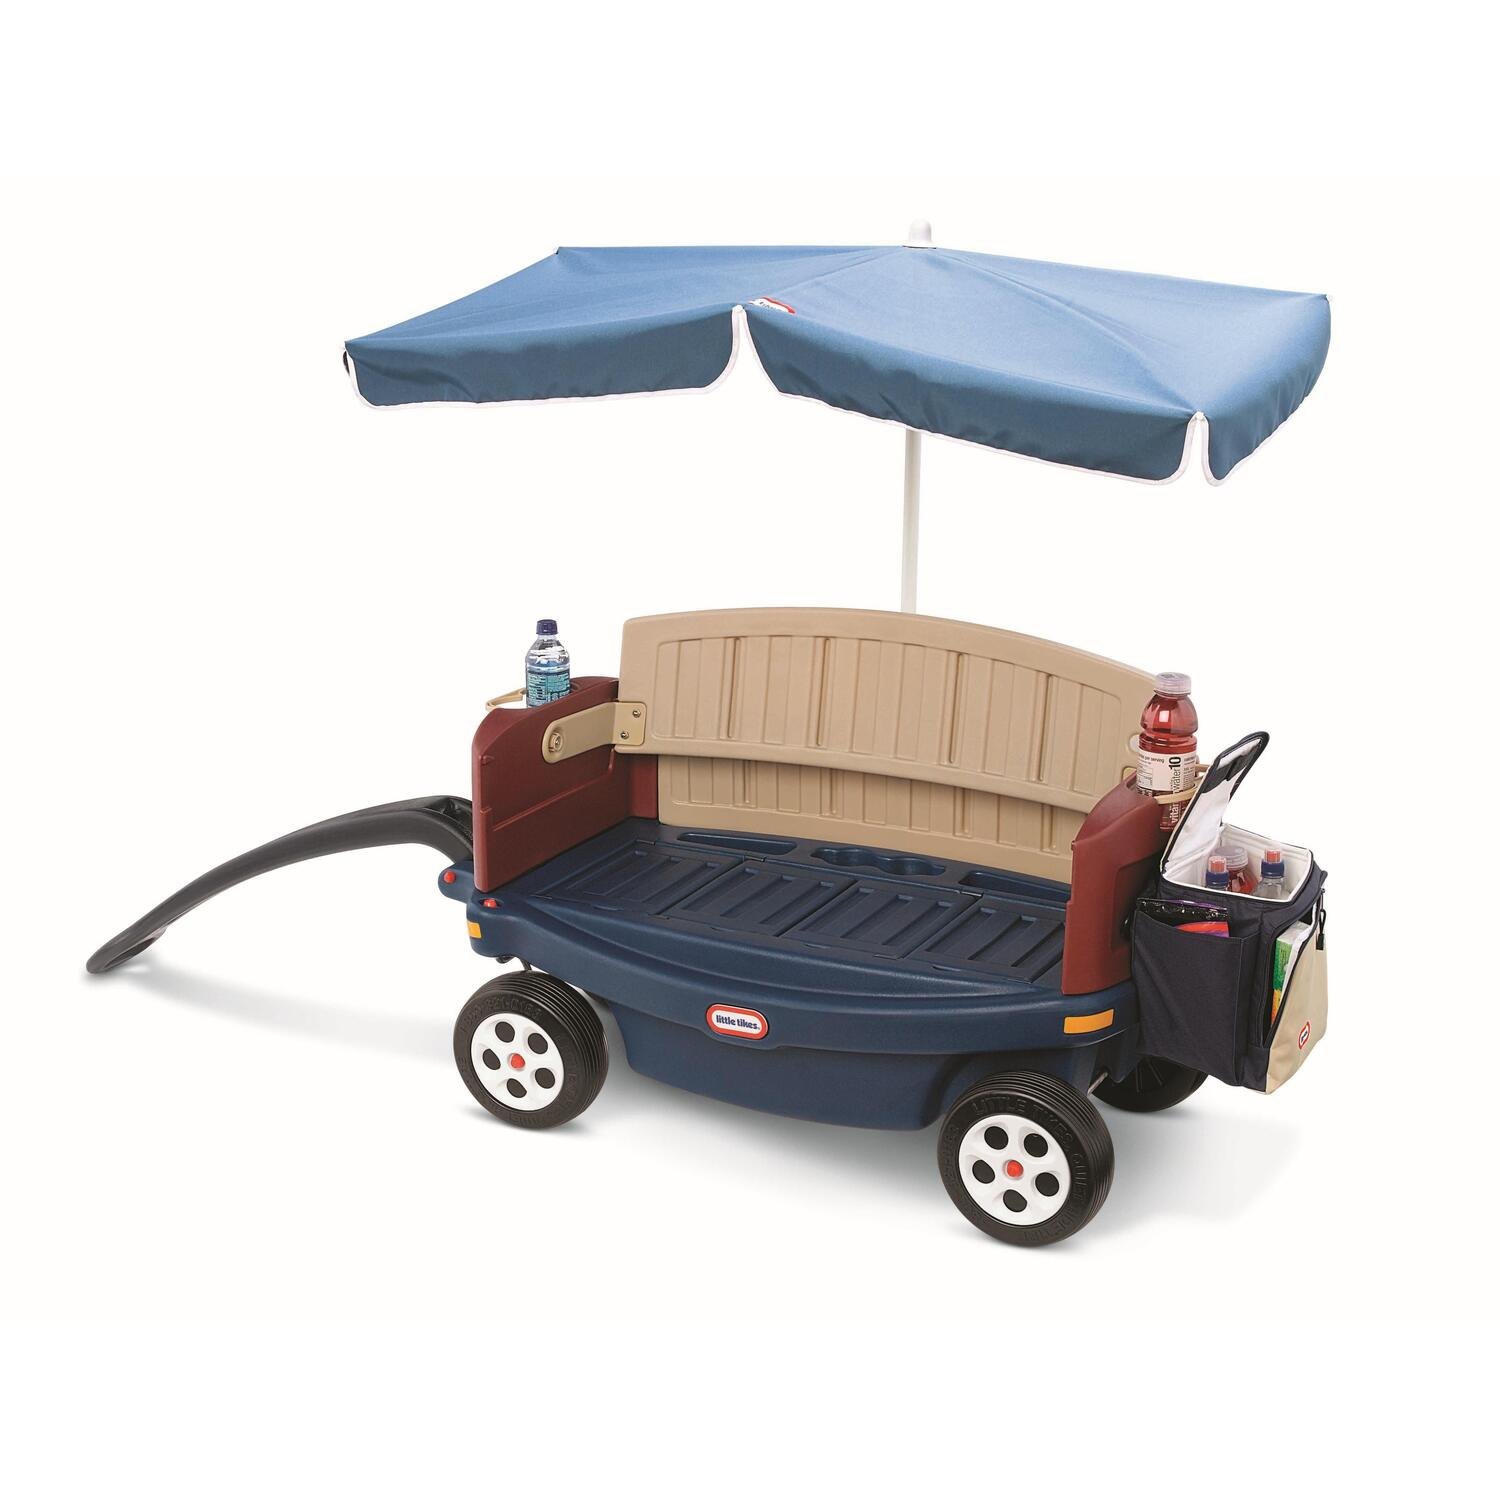 Deluxe Ride Relax Wagon Umbrella Cooler Ojcommerce